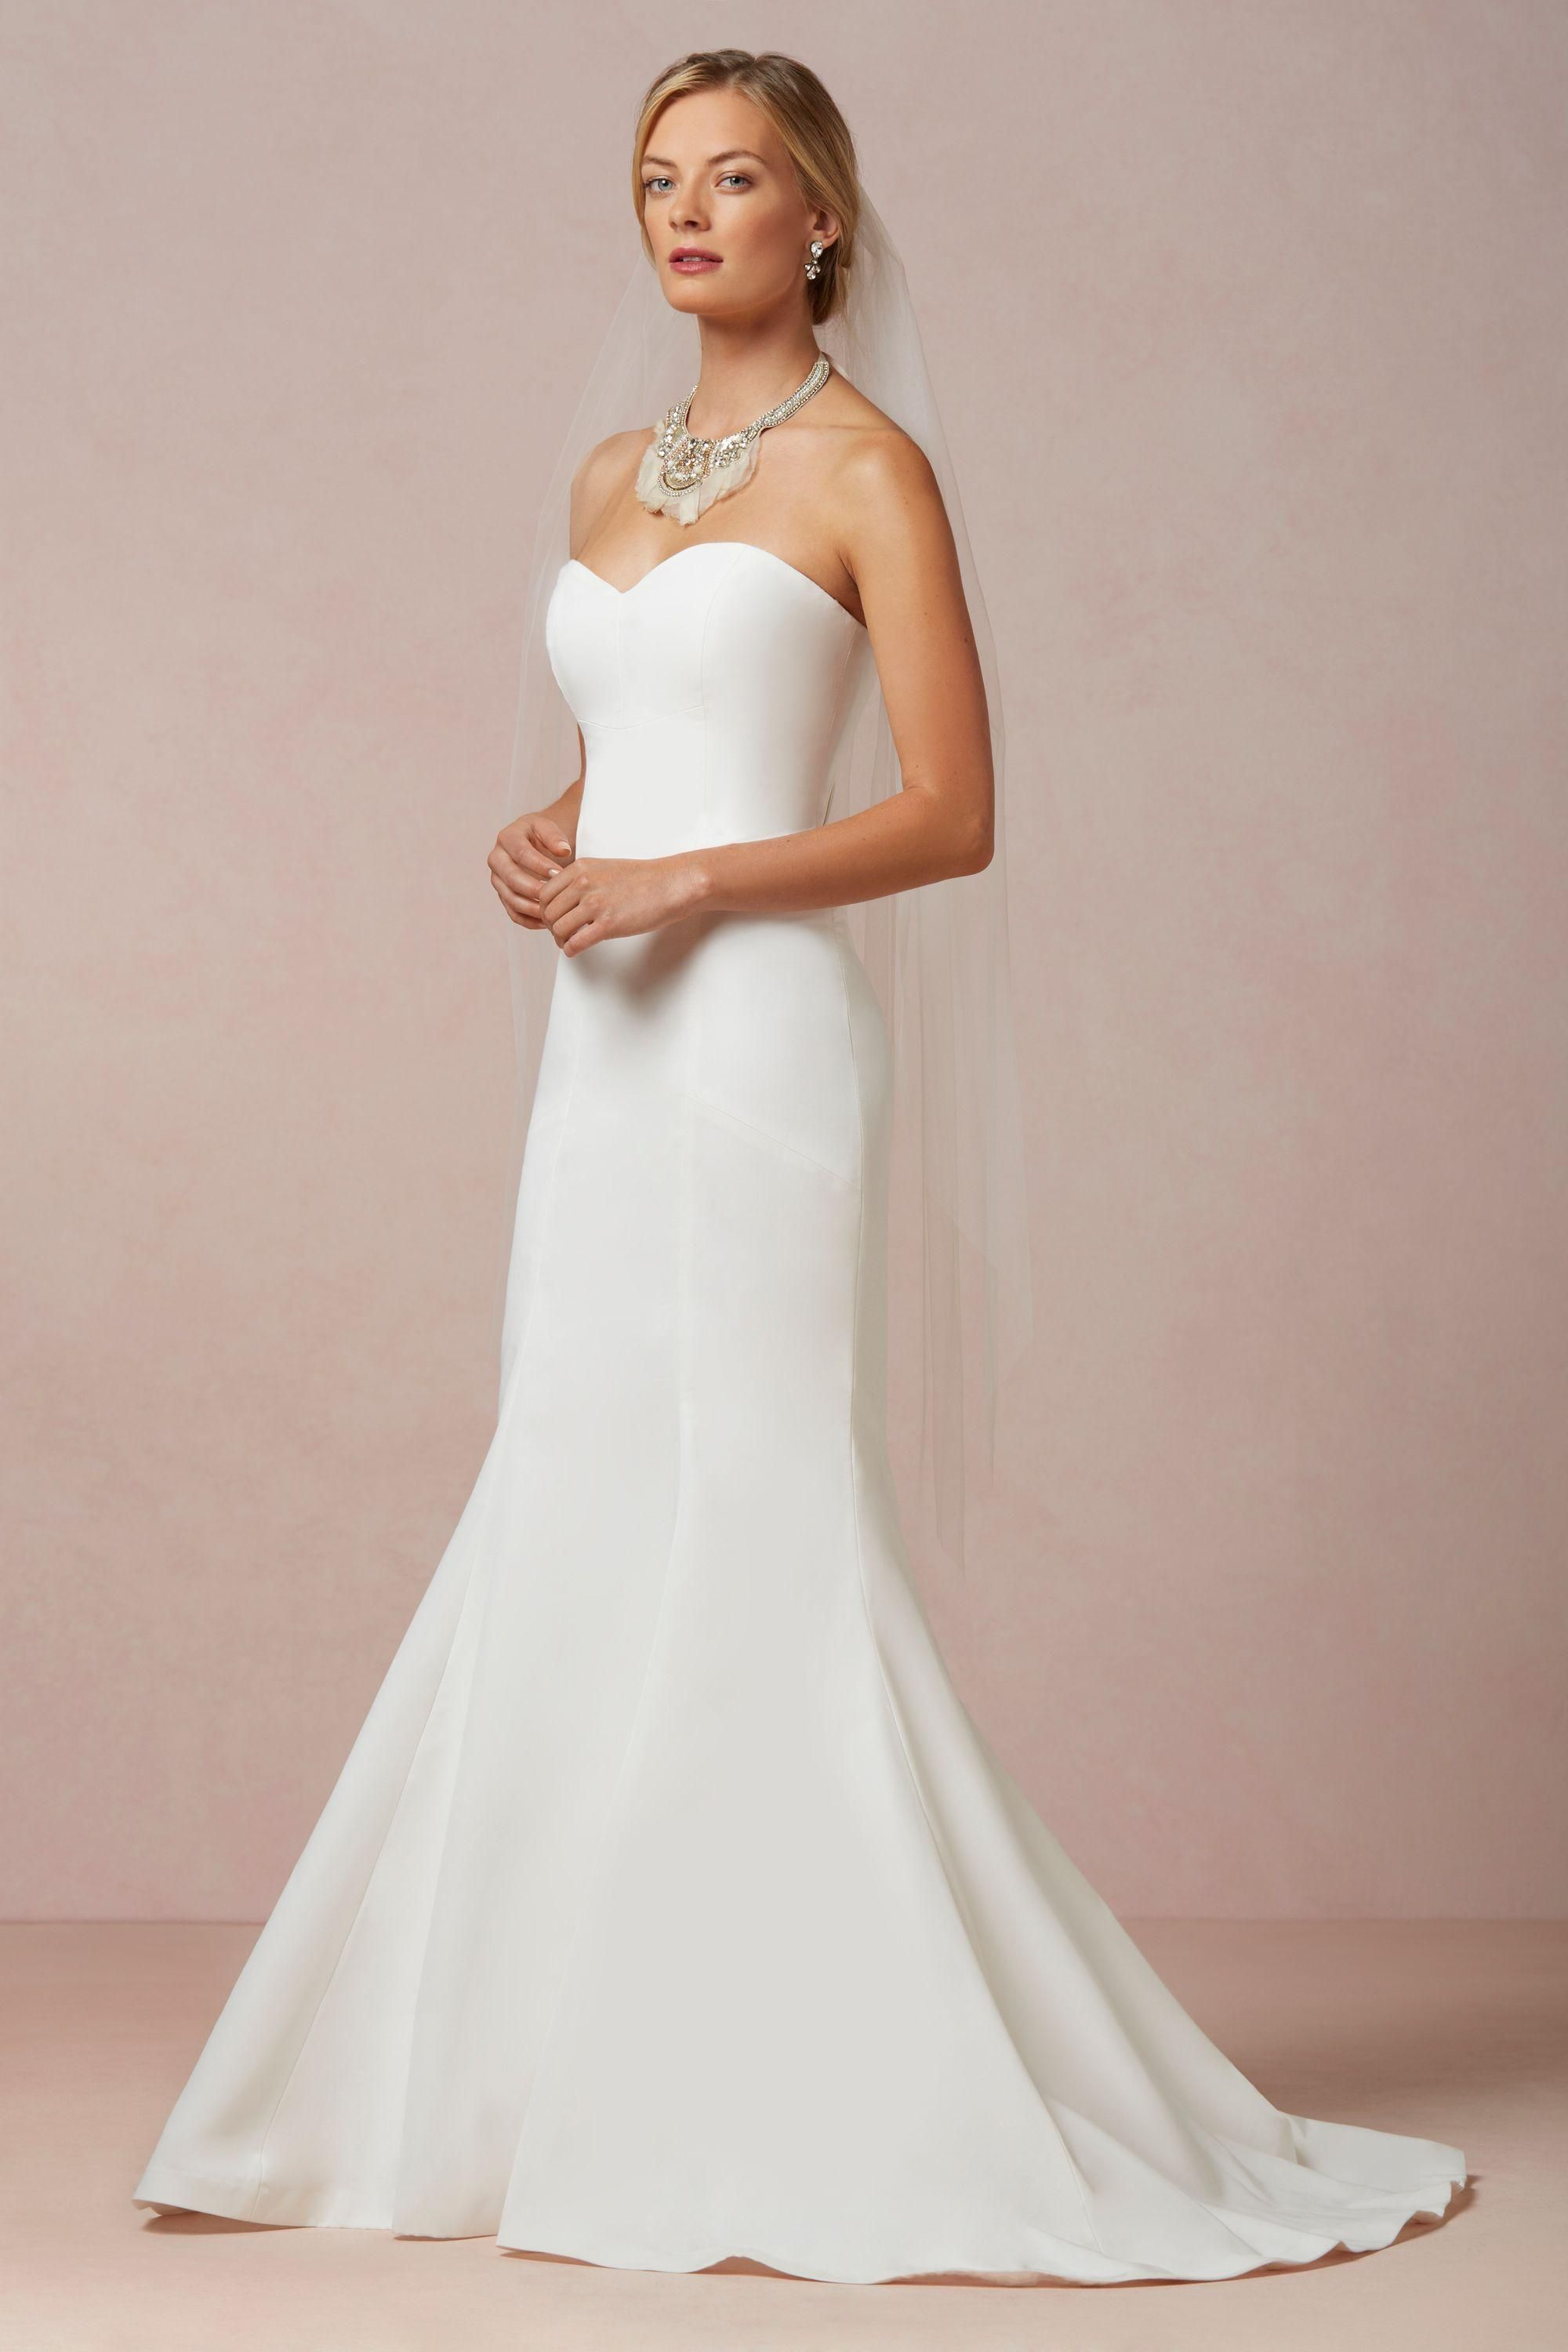 Plain White Strapless Wedding Dress